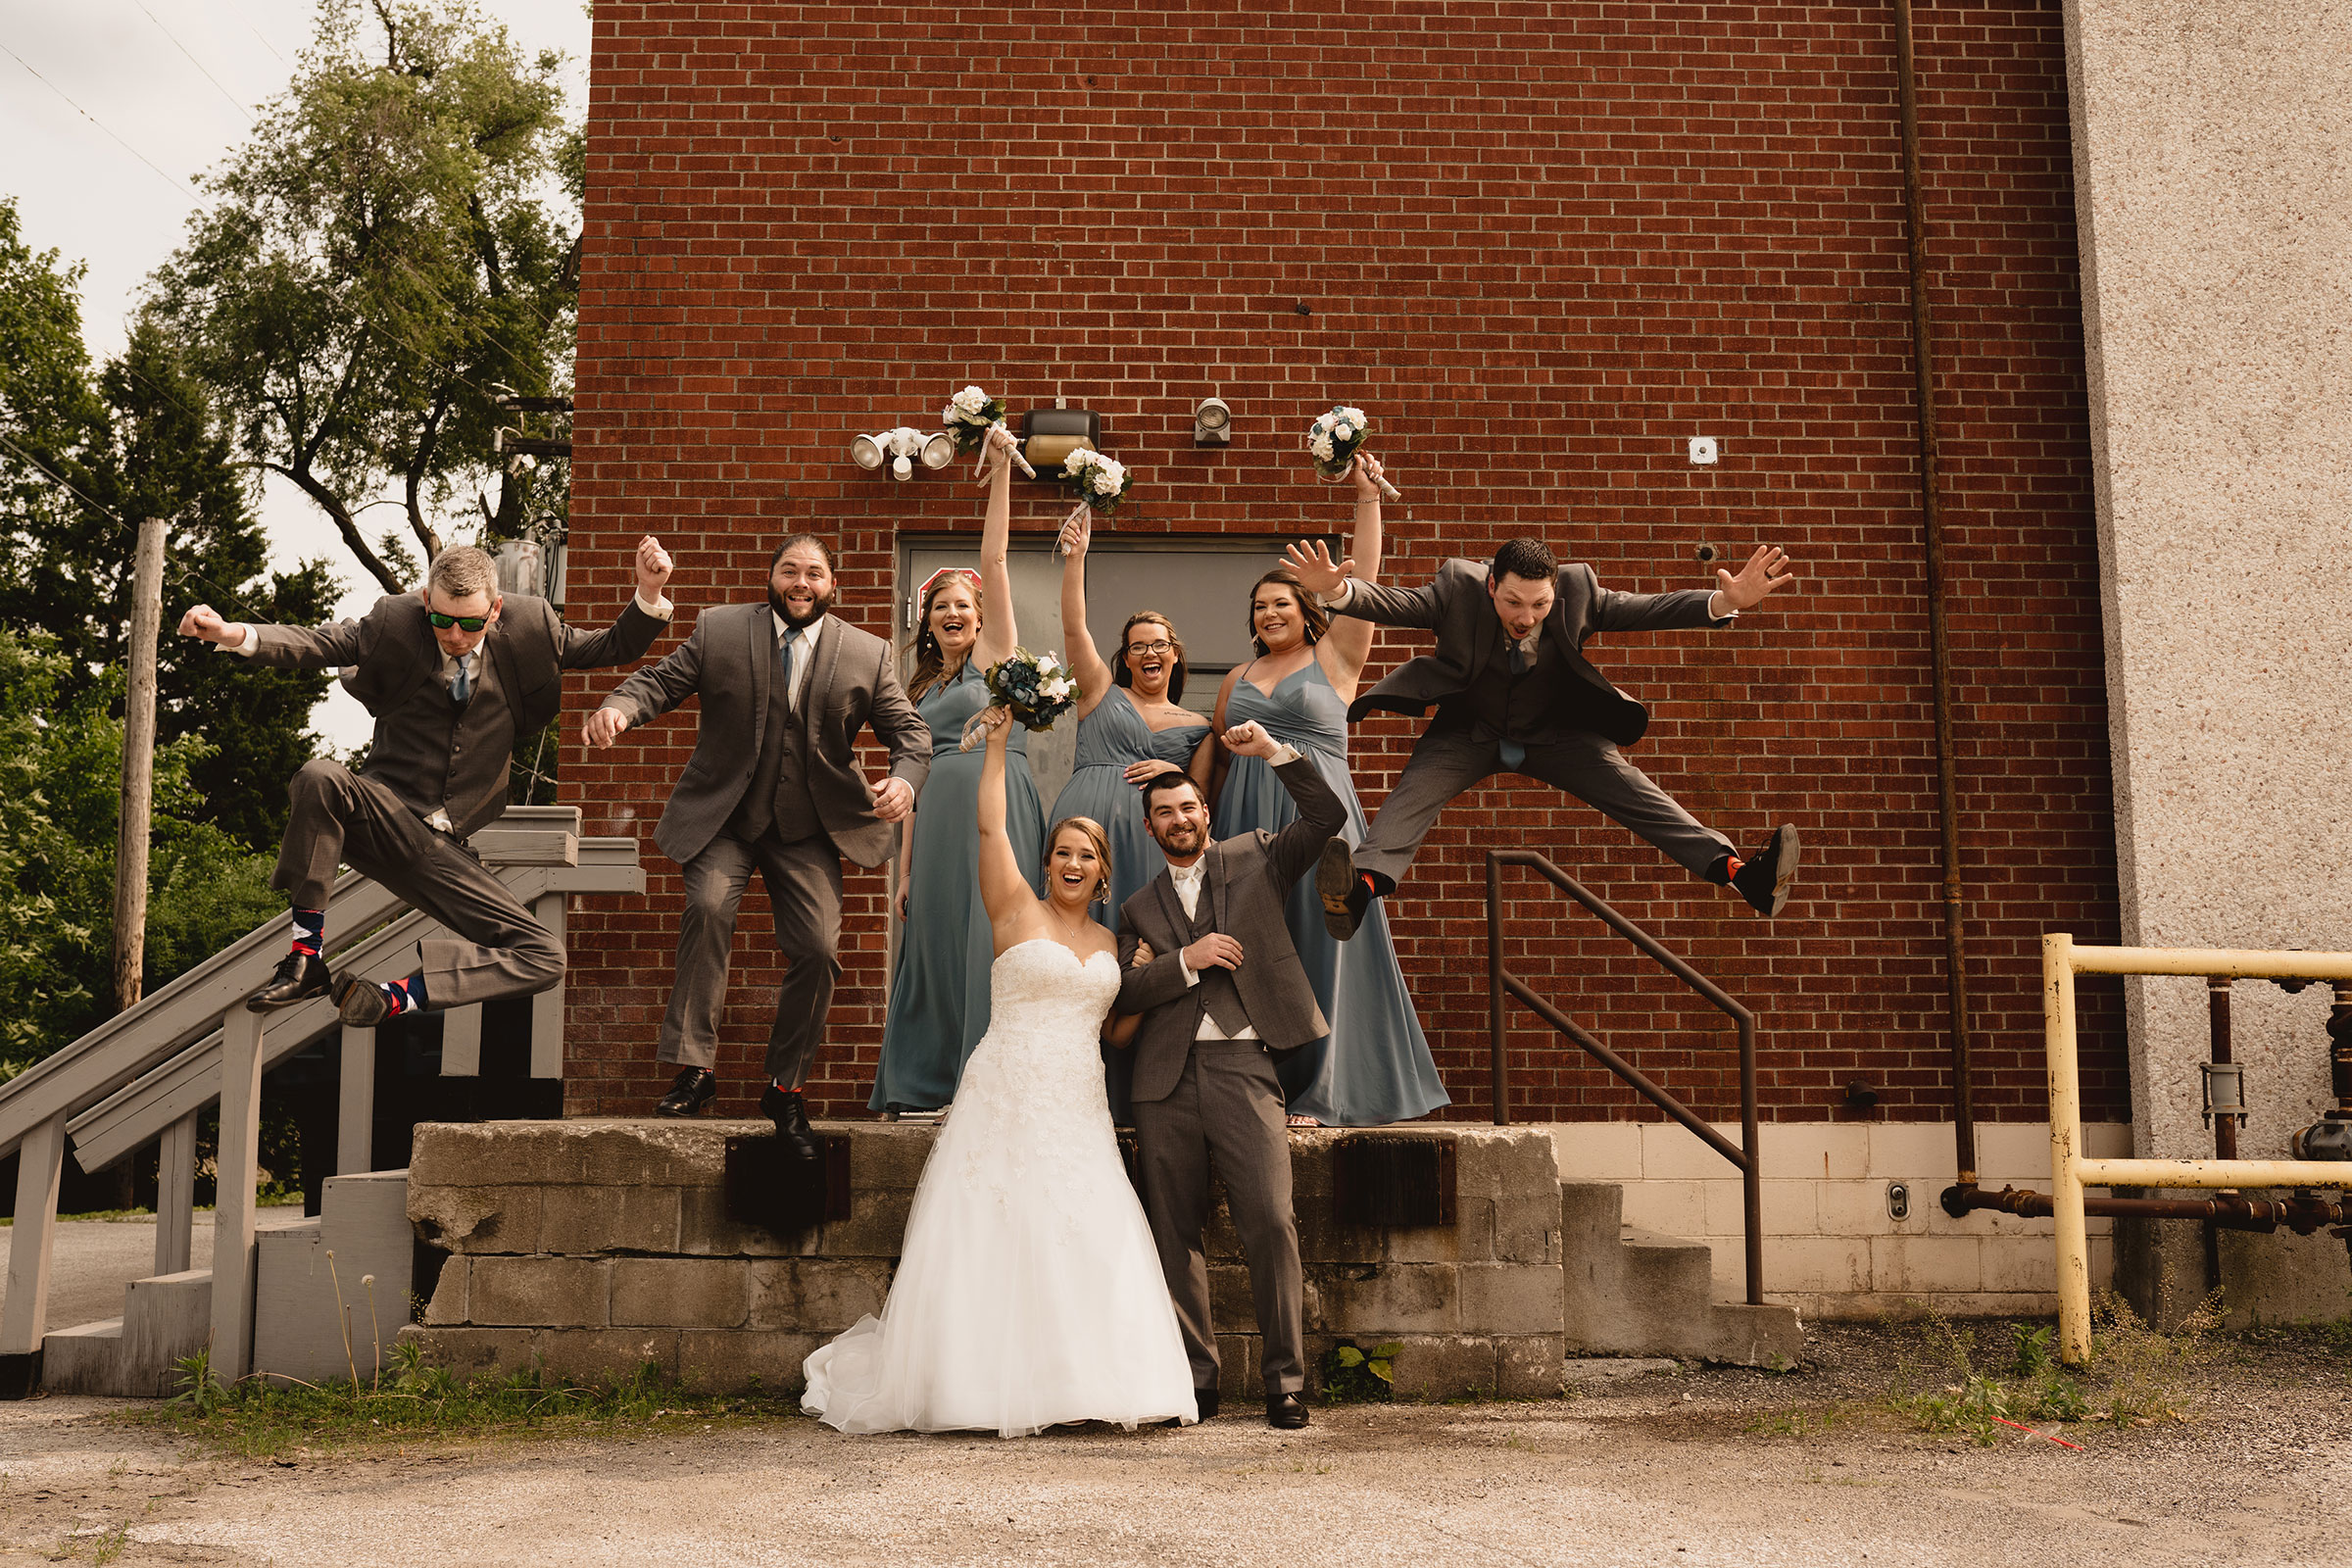 groomsmen-jumping-in-air-decades-event-center-building-desmoines-iowa-raelyn-ramey-photography..jpg